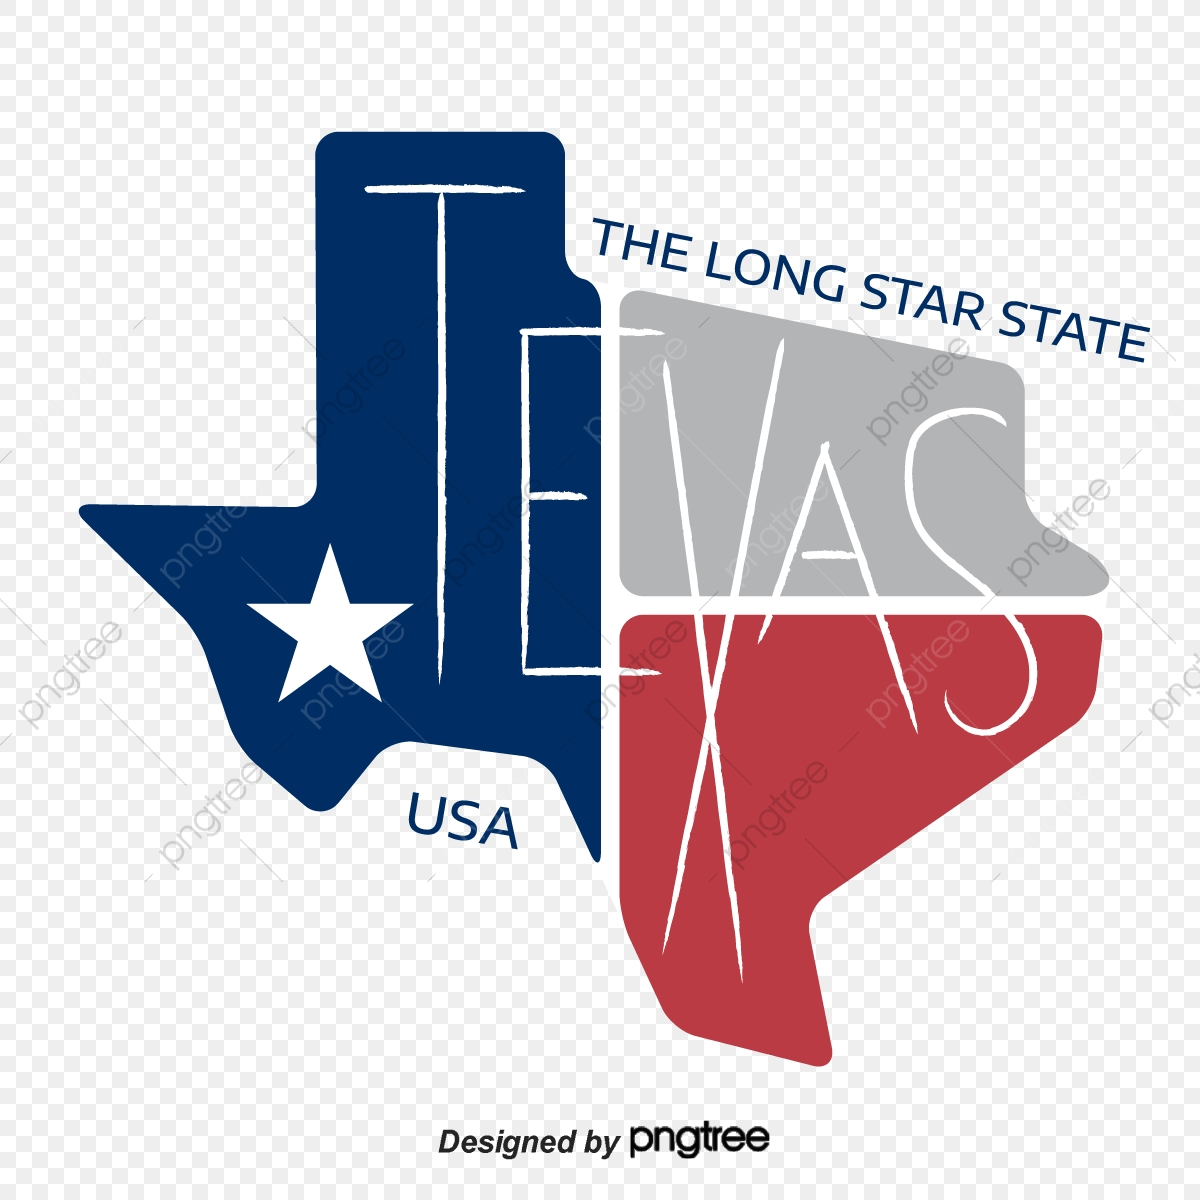 Geometric Retro Simple Texas Map, Logo, Geometric, Map PNG ... on location of rosenberg texas, major aquifers of texas, google austin texas, american bank of texas, the annexation of texas, geographic center of texas, dallas texas, relative location of texas, geographical id texas, city of rosenberg texas, temperature austin texas, missions of texas, city of manor texas, austin city limits map texas, lakes of texas, 3d physical map texas, printable maps north texas, is there desert in texas, black and white state of texas, stuff about texas,